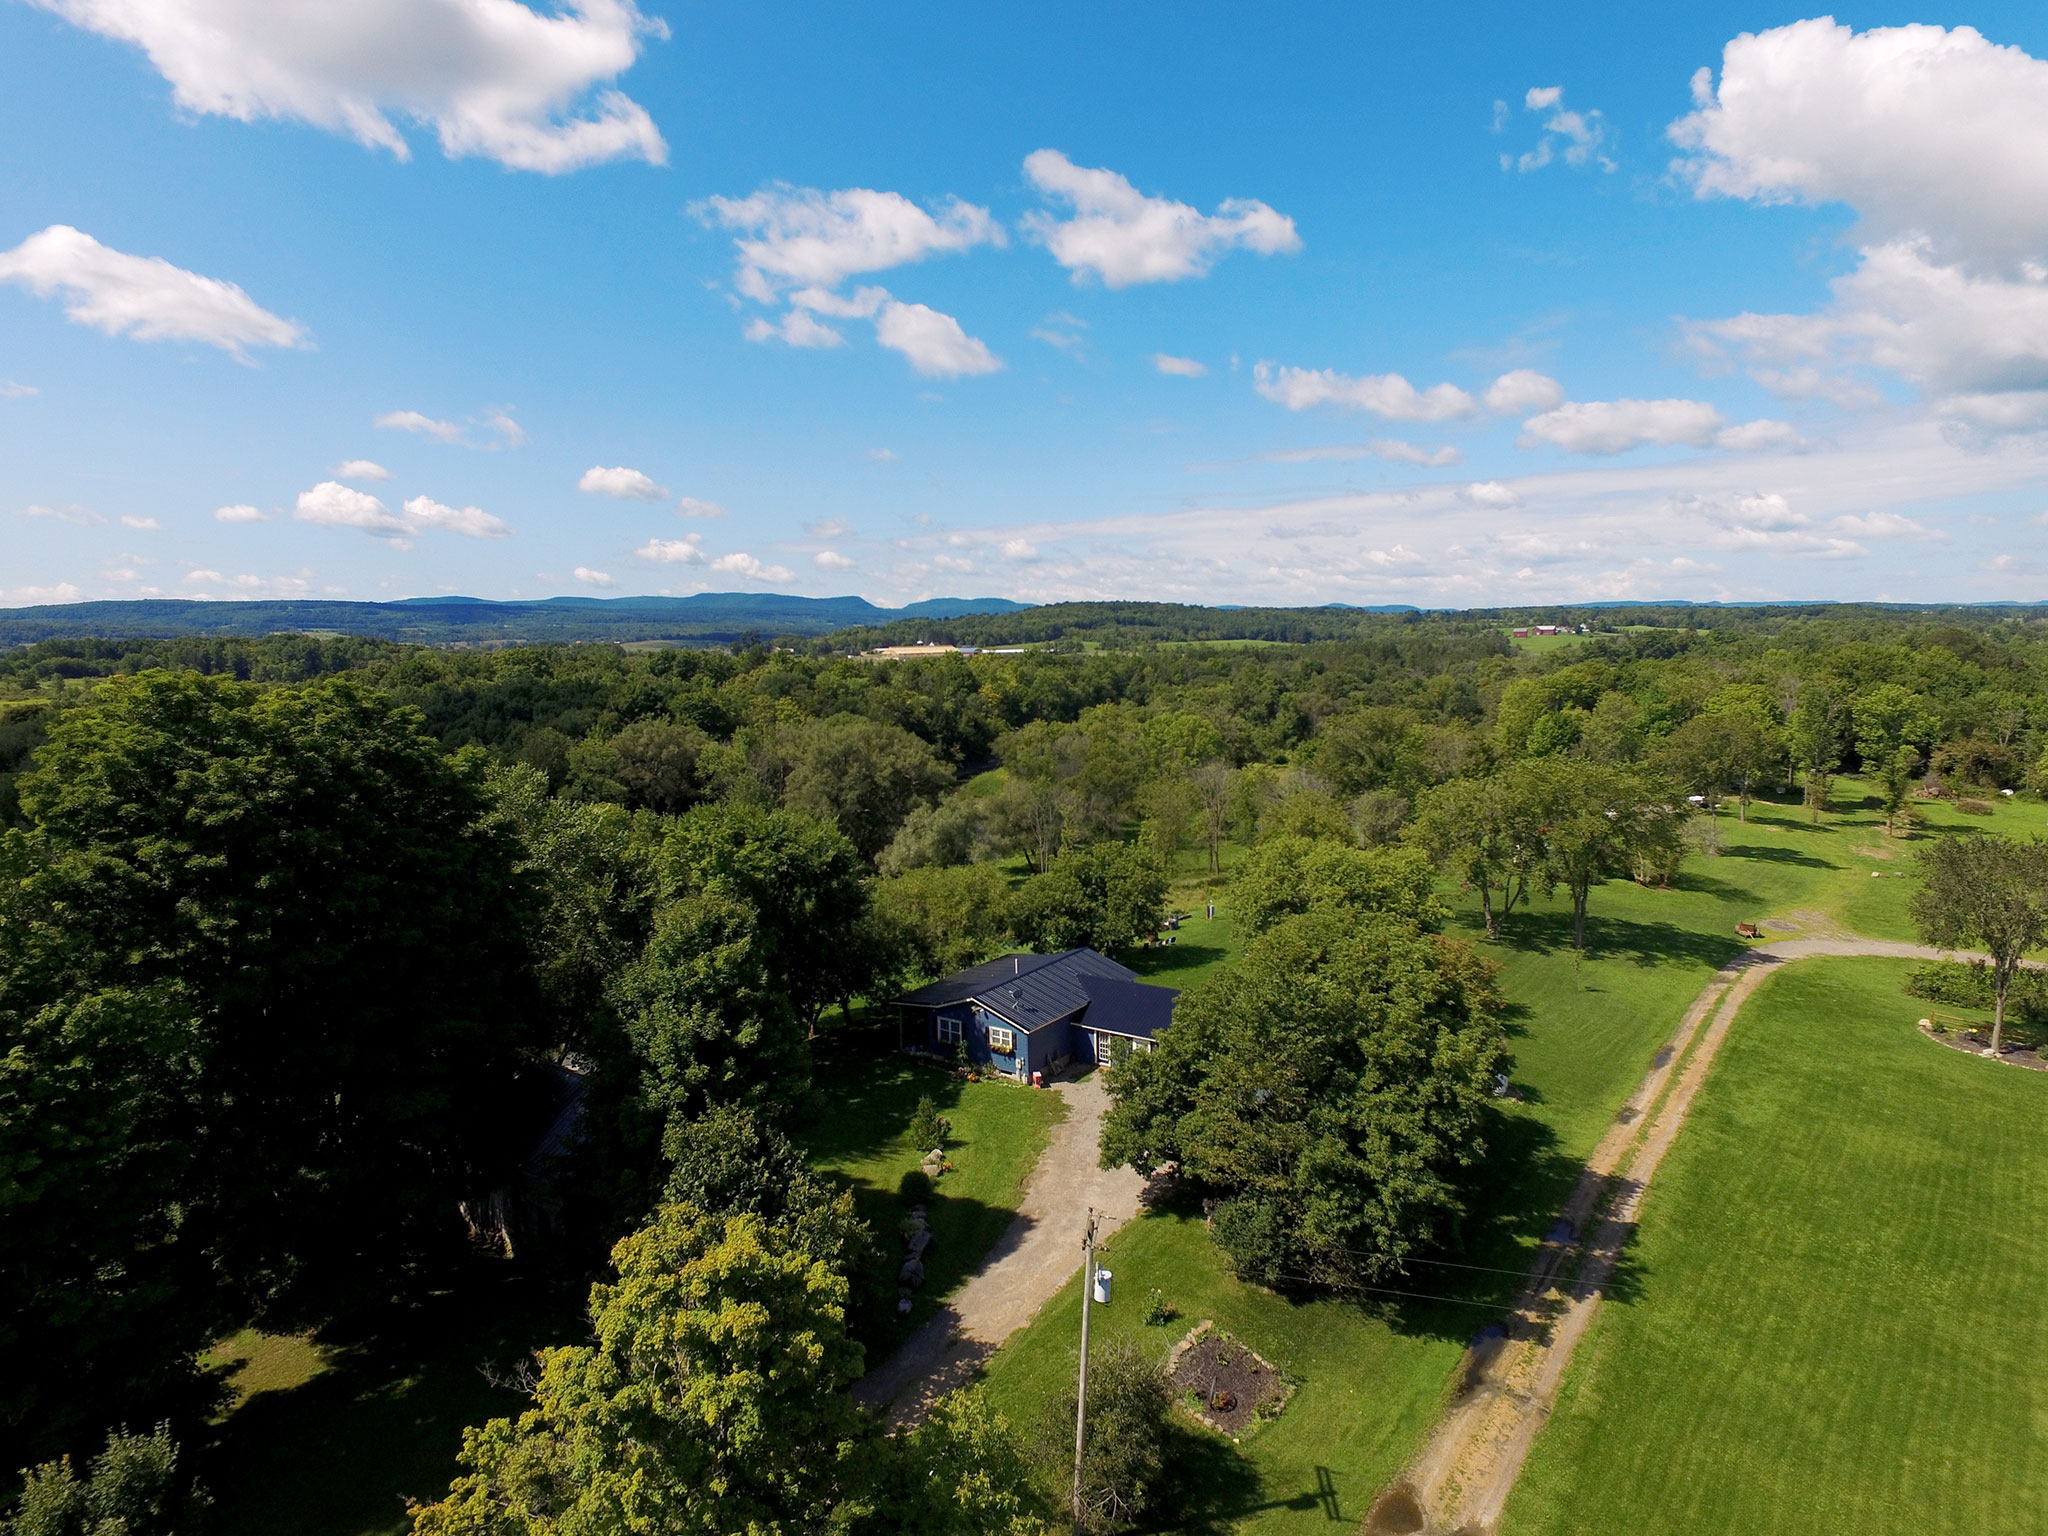 Aerial photo of property in Canajoharie, New York.